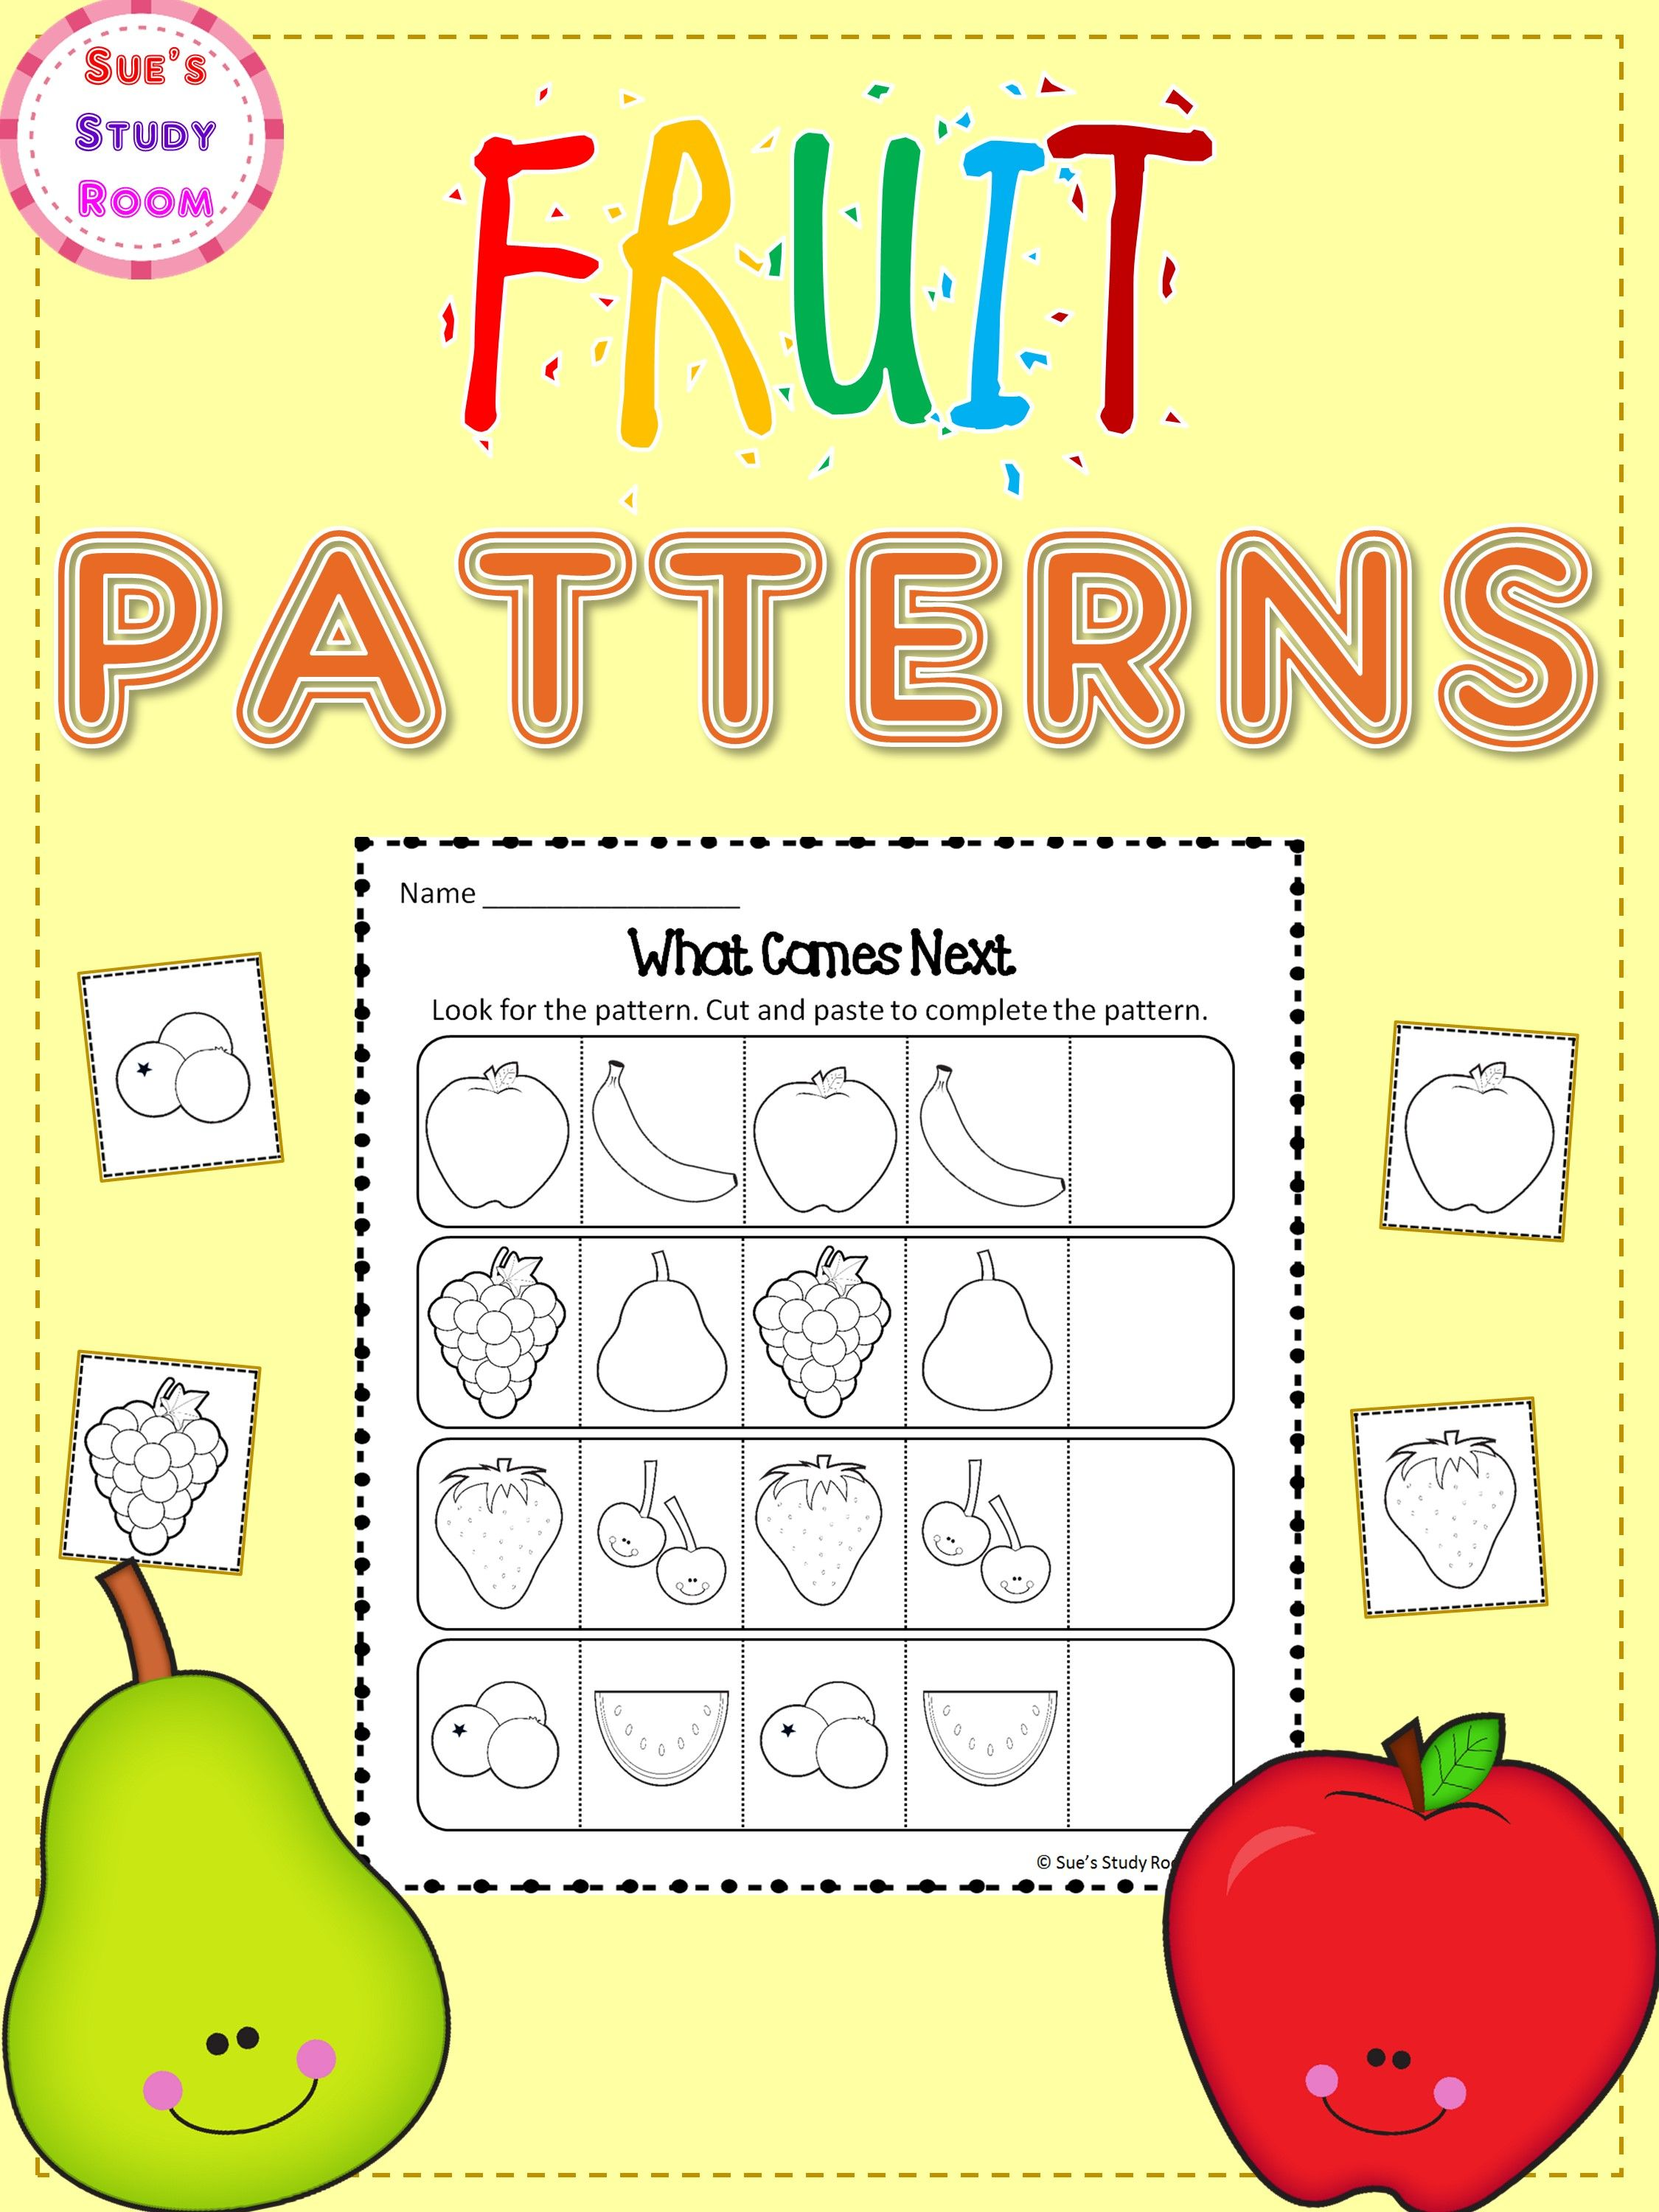 Patterns Fruit Patterns Worksheets